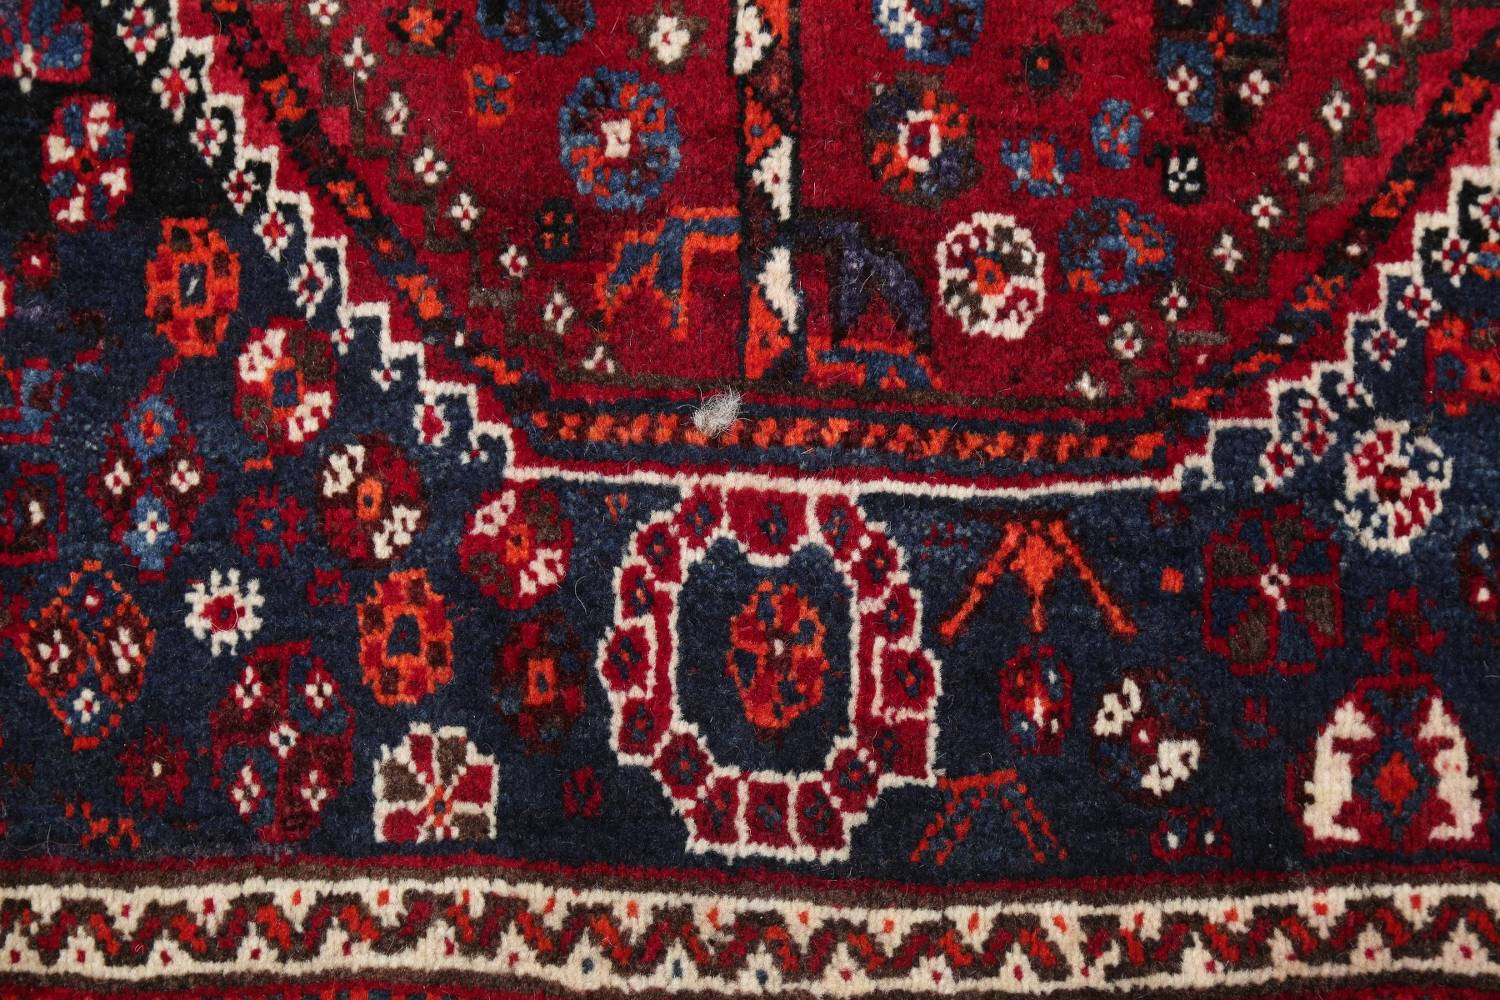 Antique Red Tribal Geometric Qashqai Persian Hand-Knotted 5x8 Wool Area Rug image 7